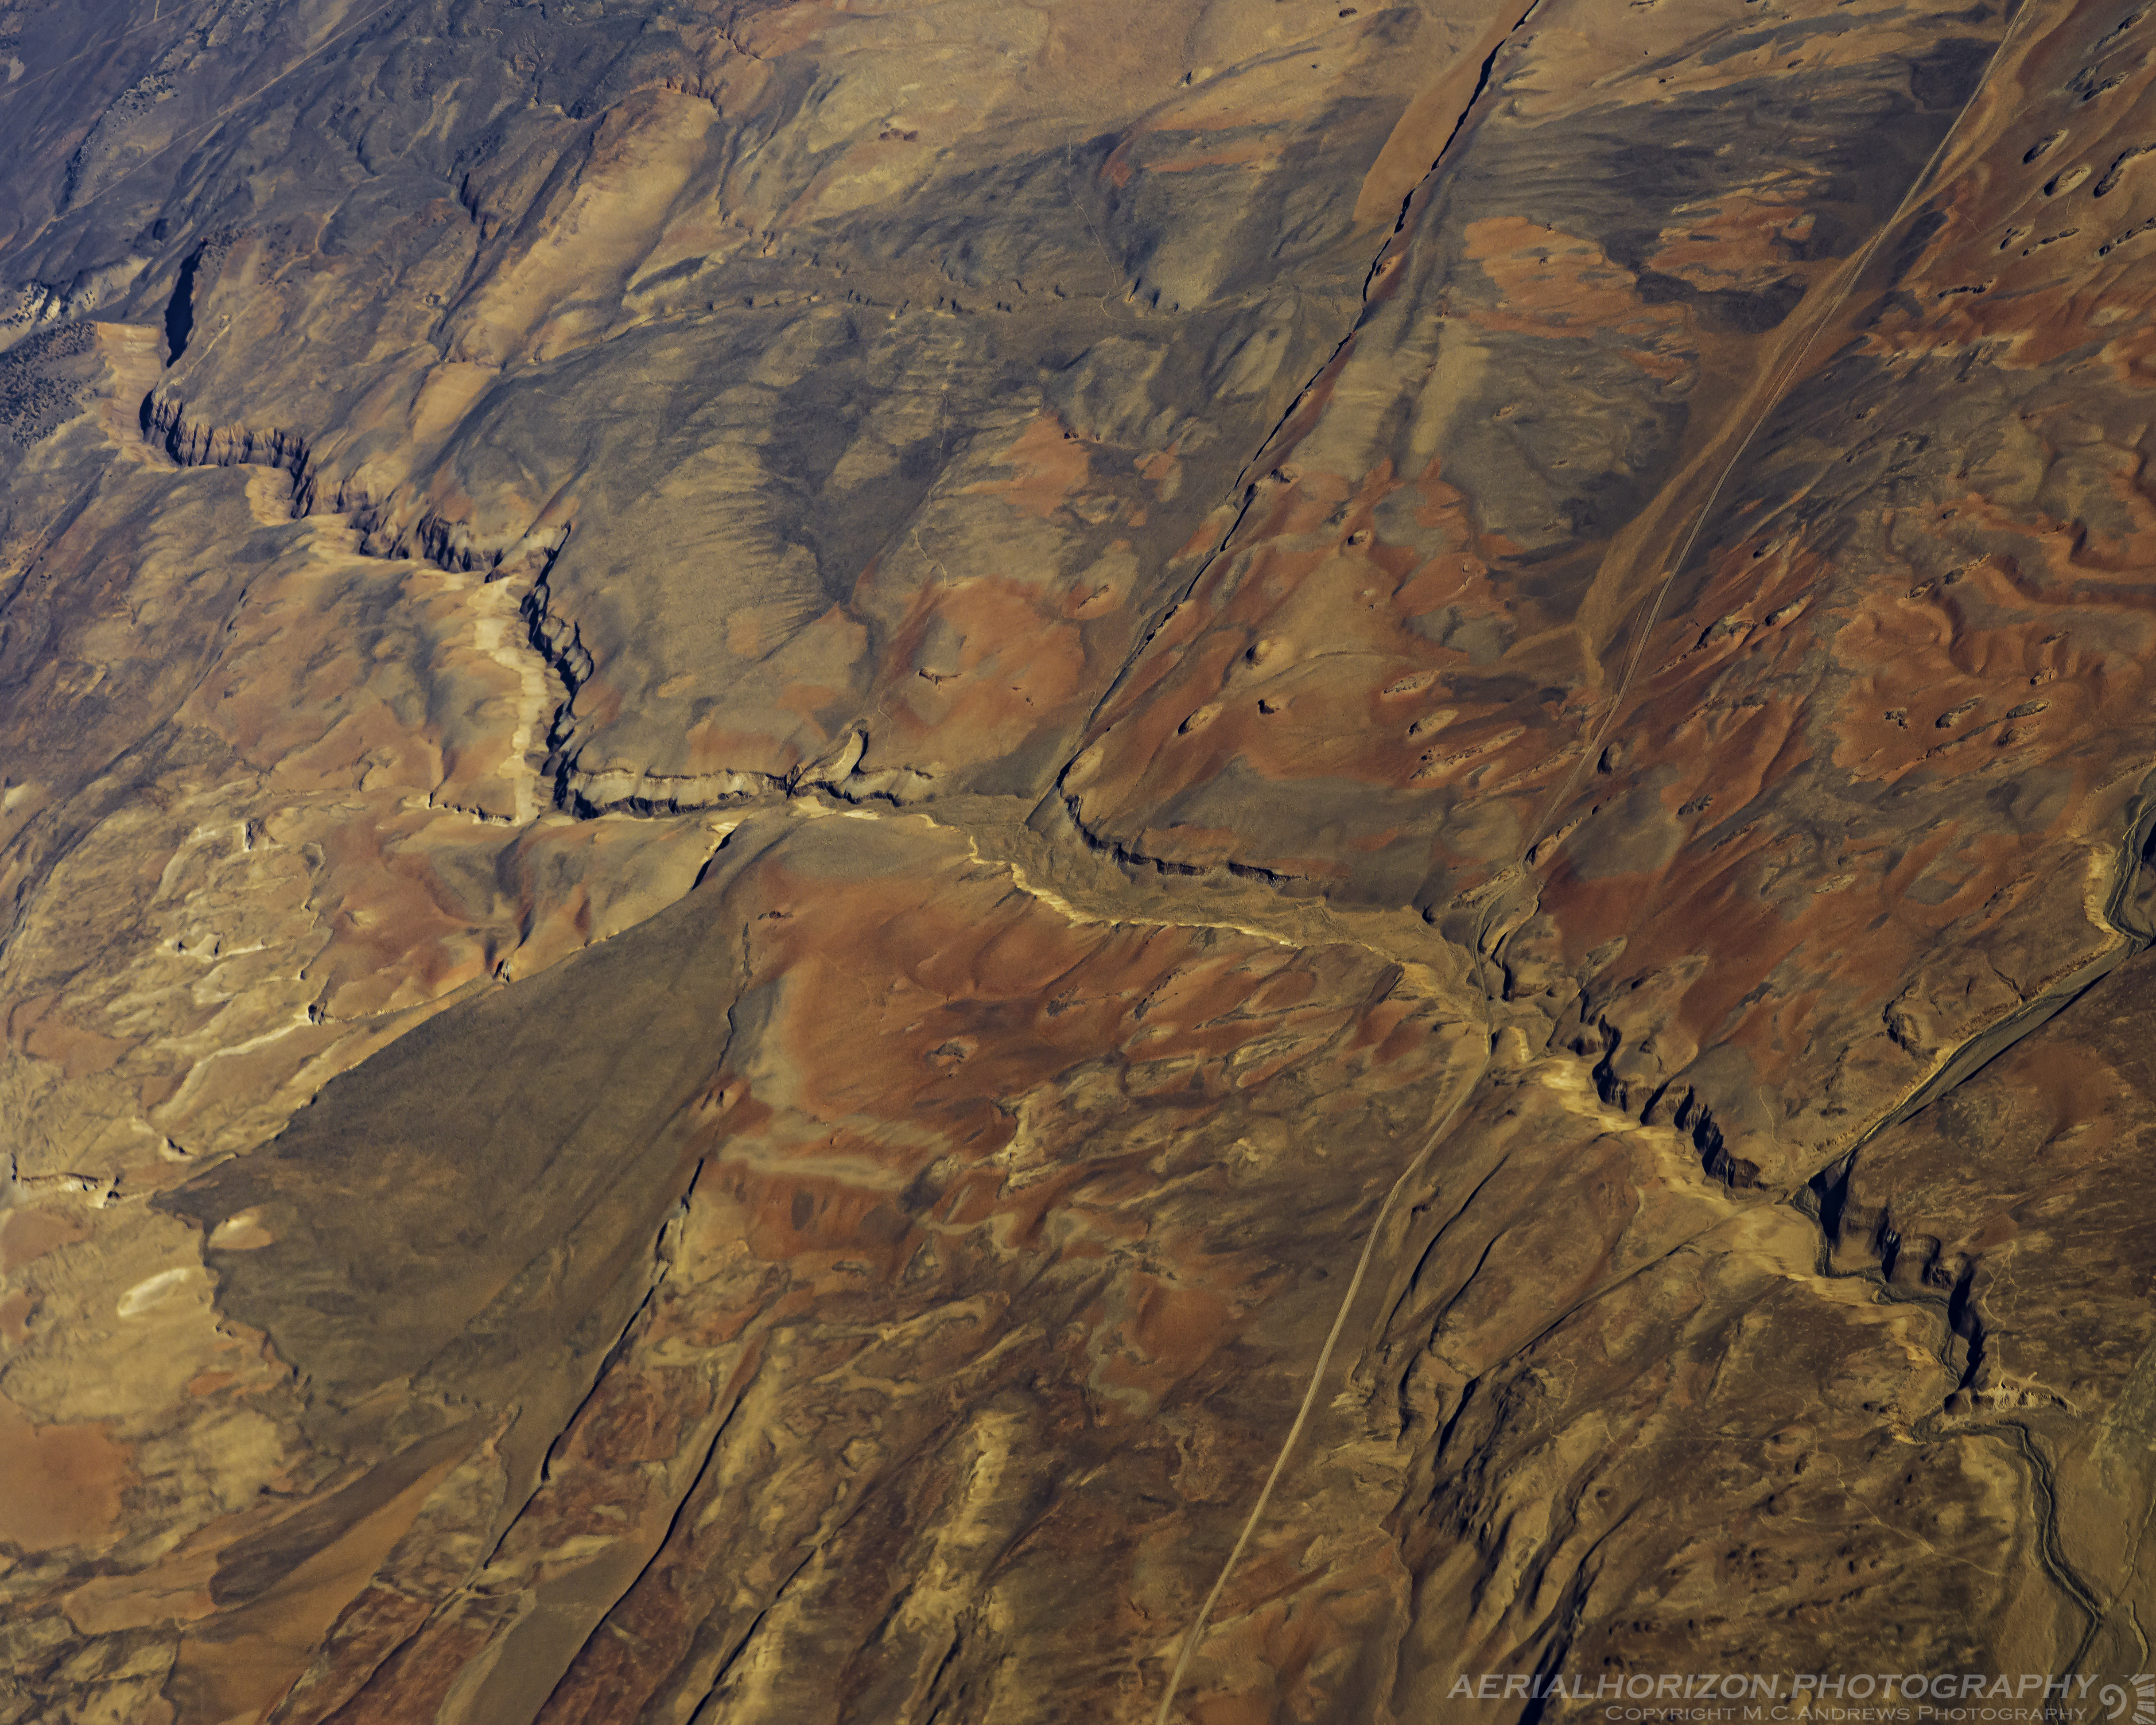 Abstract Landscape - A California Gorge-7319